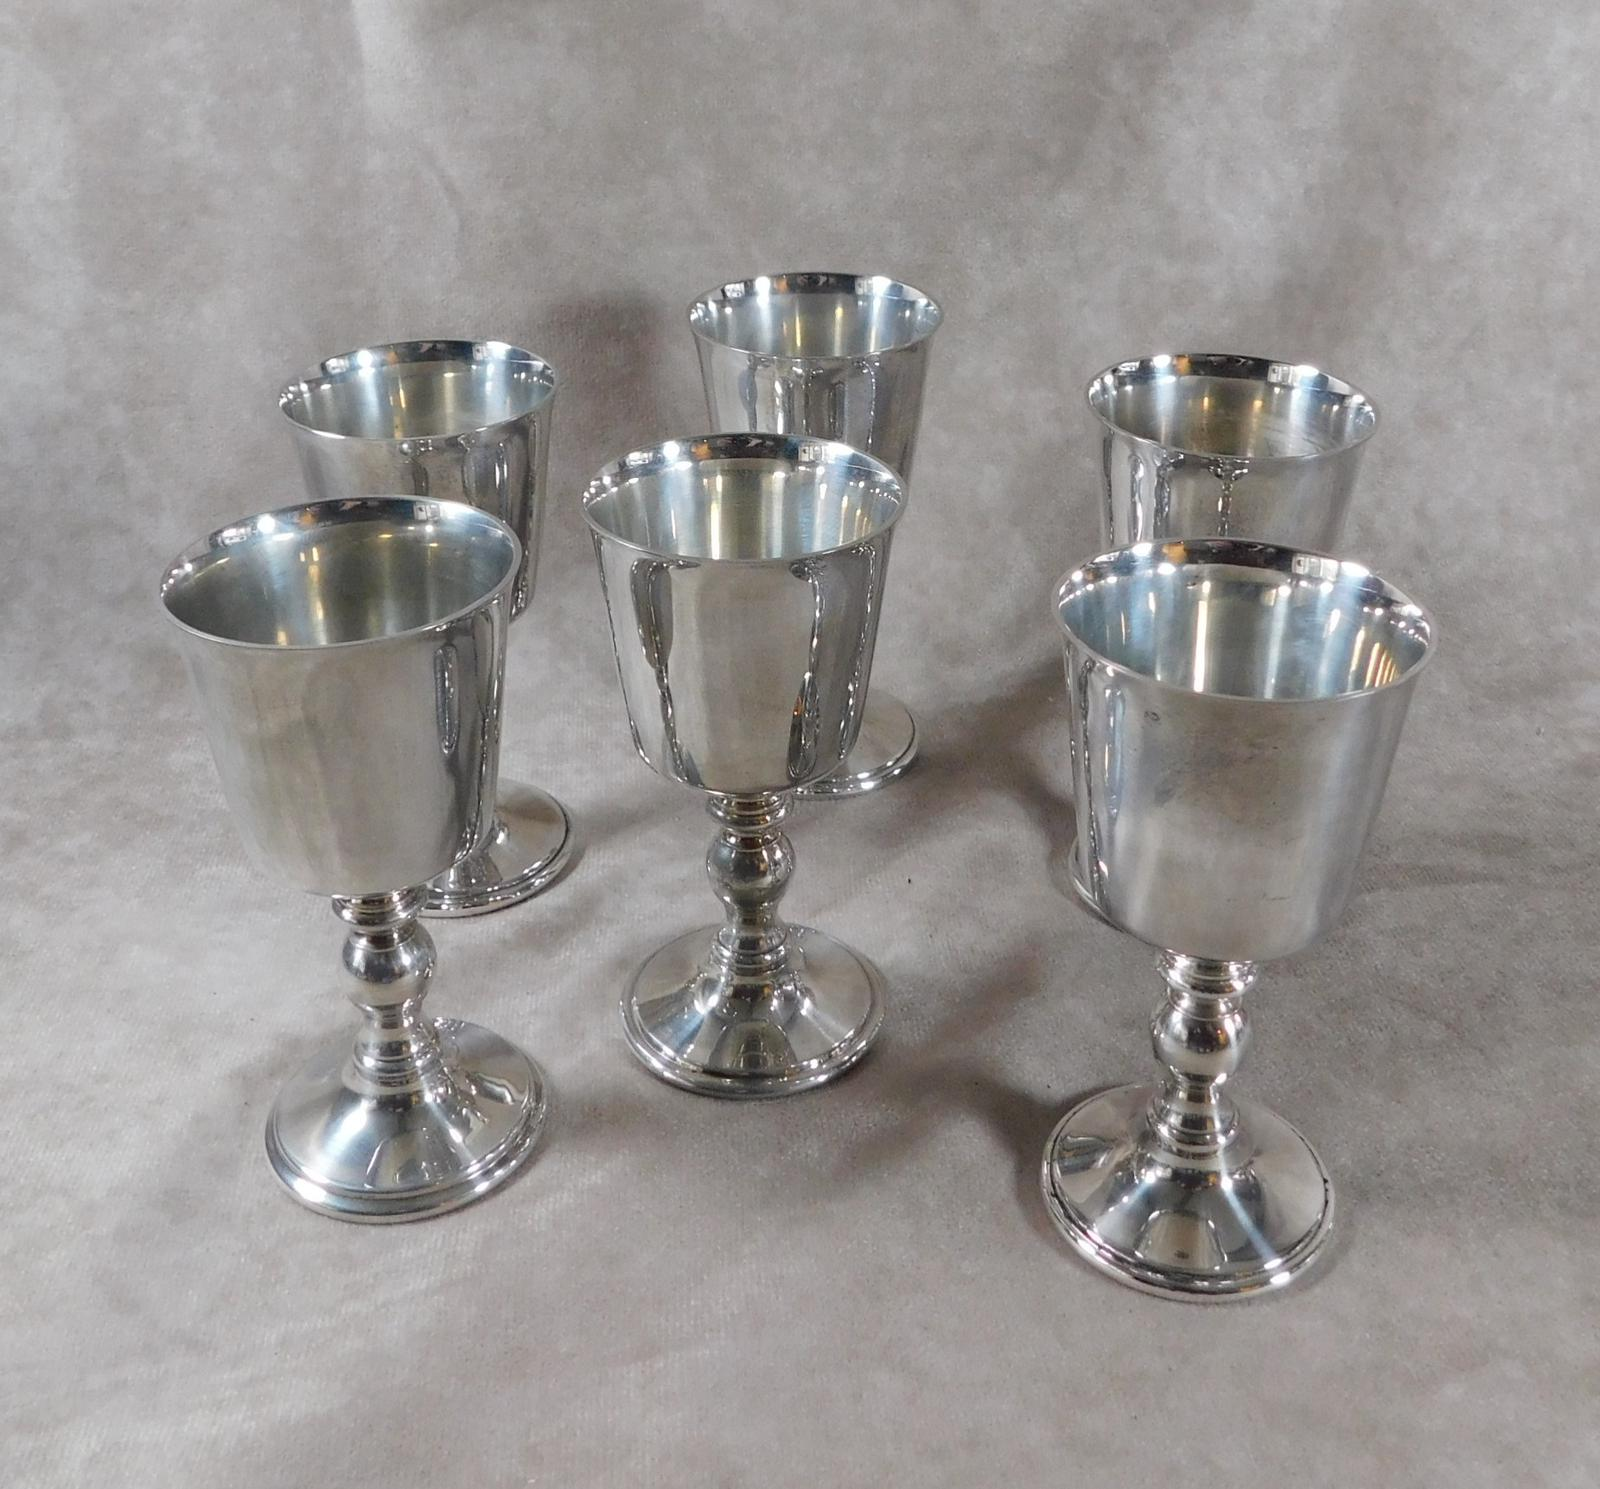 Set of Six Silver Plated Goblets by Barker Ellis, England (1 of 1)